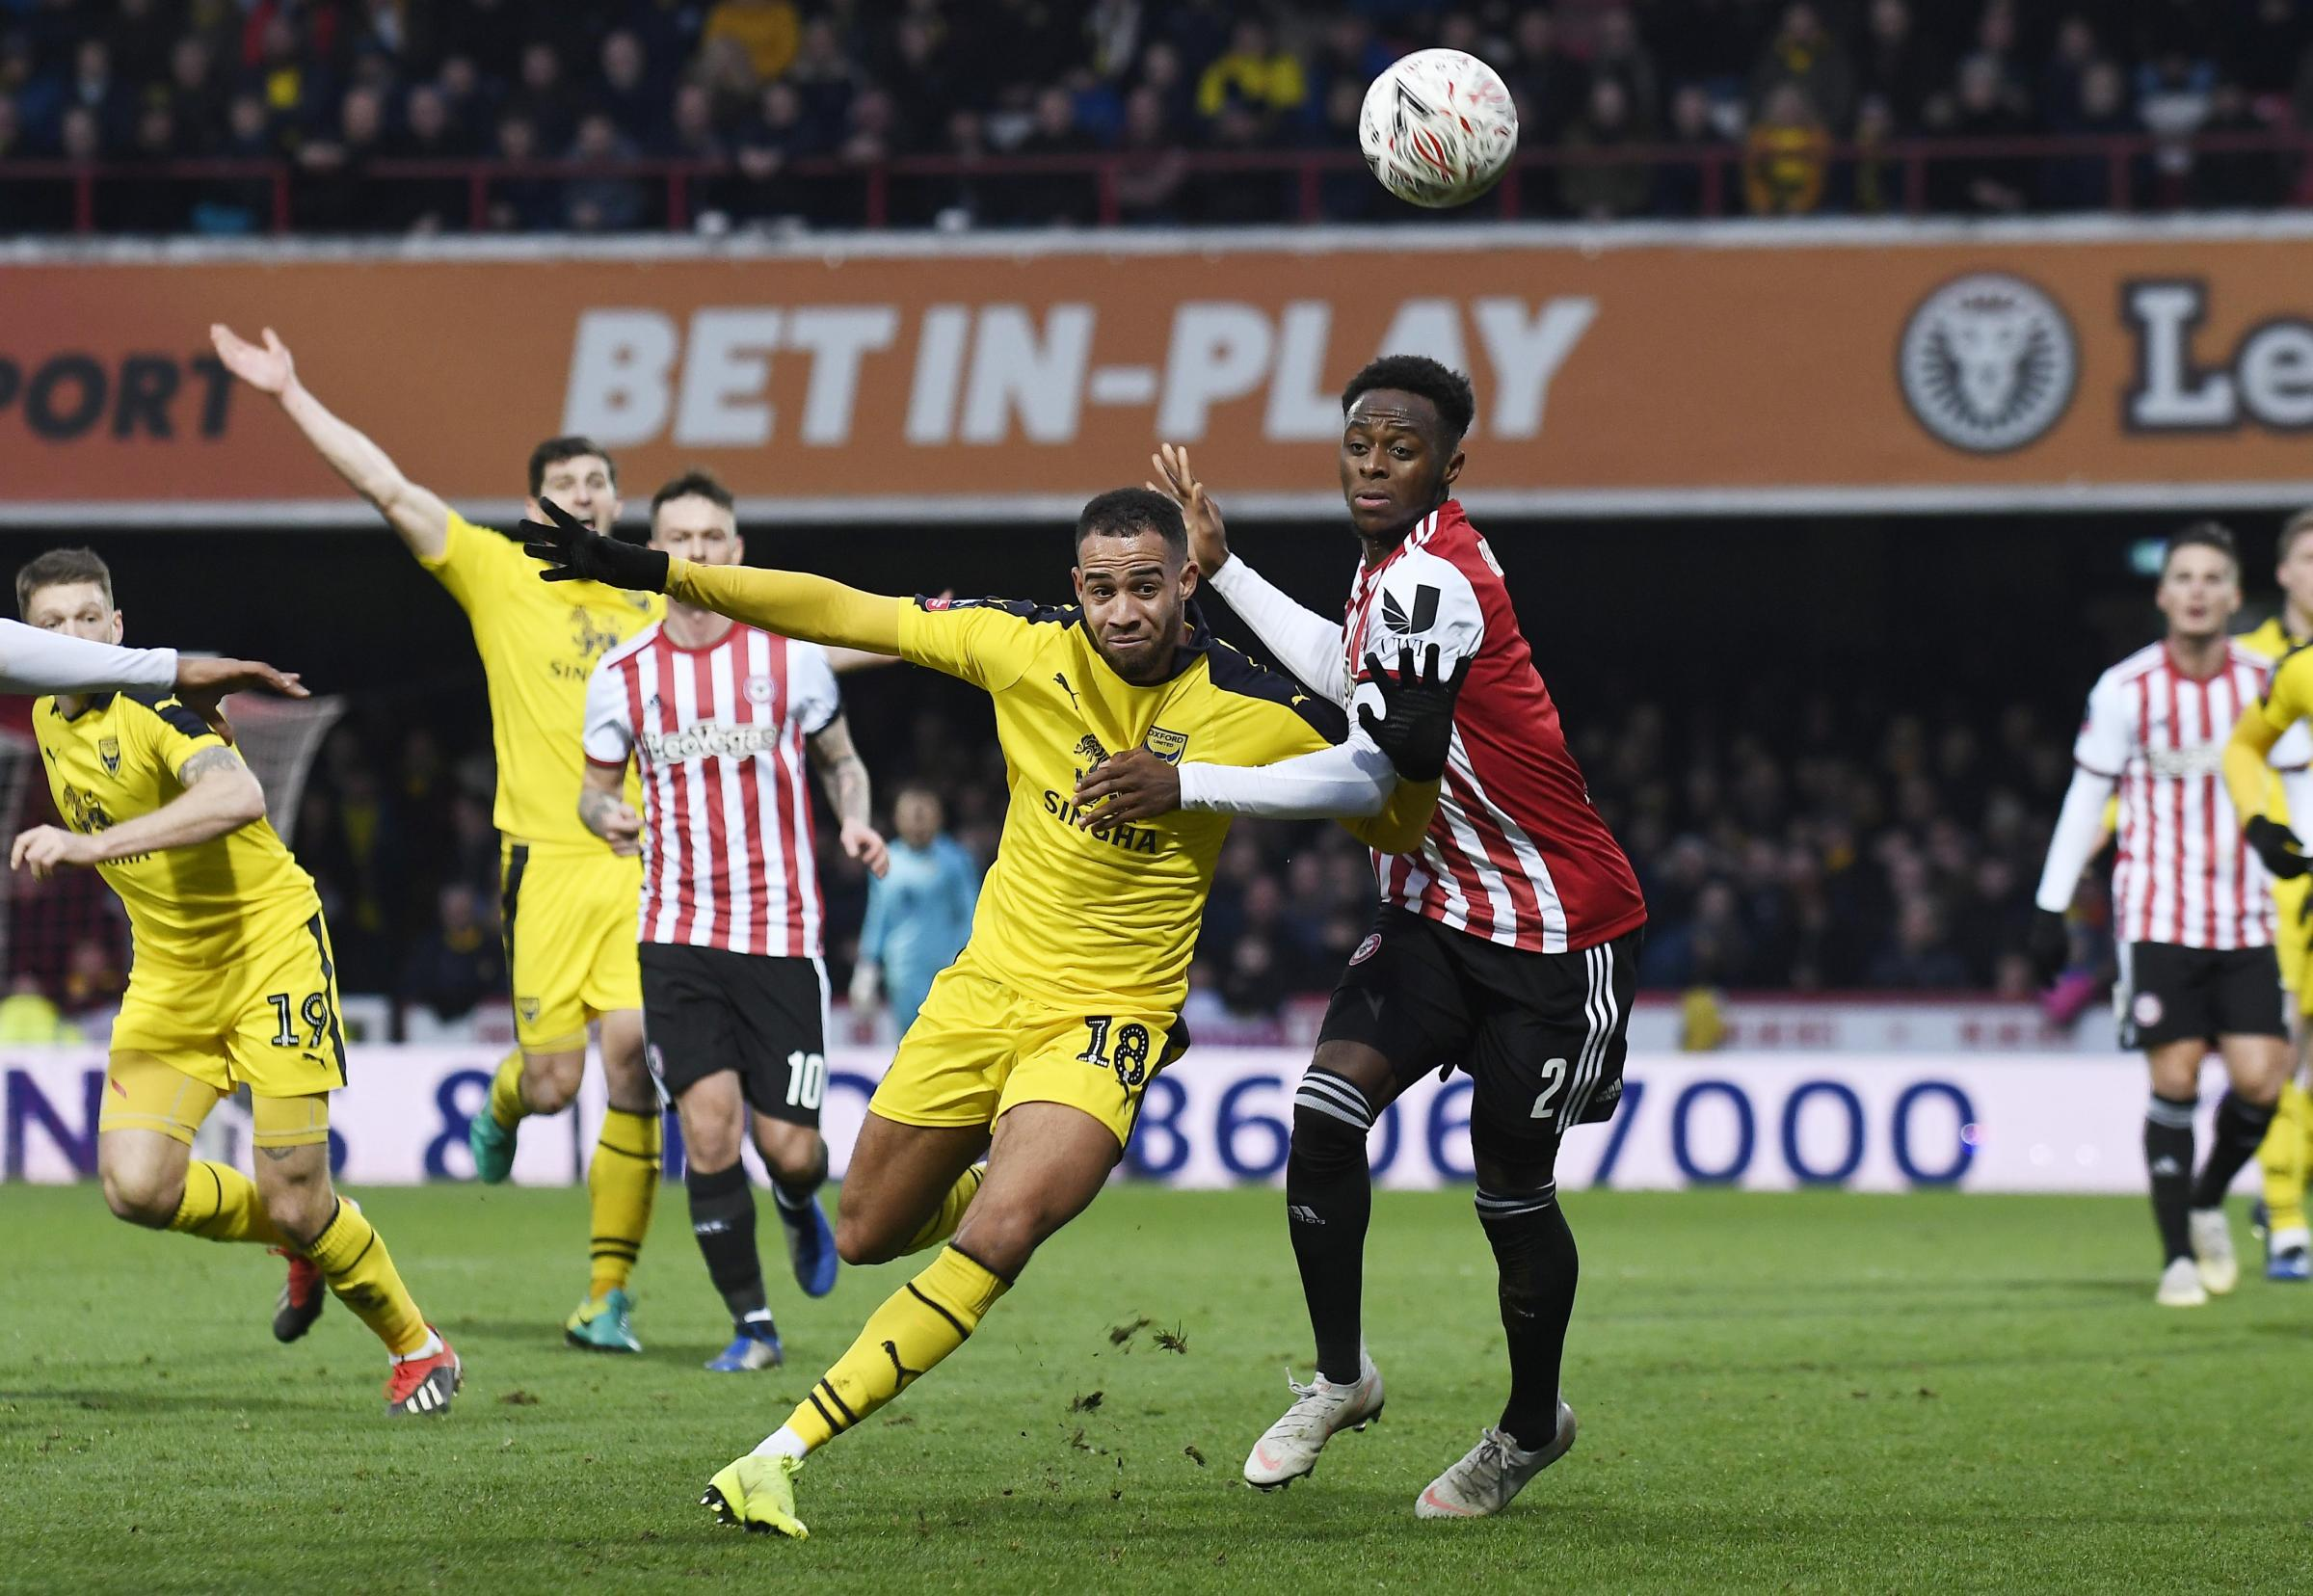 Jordan Graham began his second spell at Oxford United in the FA Cup against Brentford  Picture: David Fleming